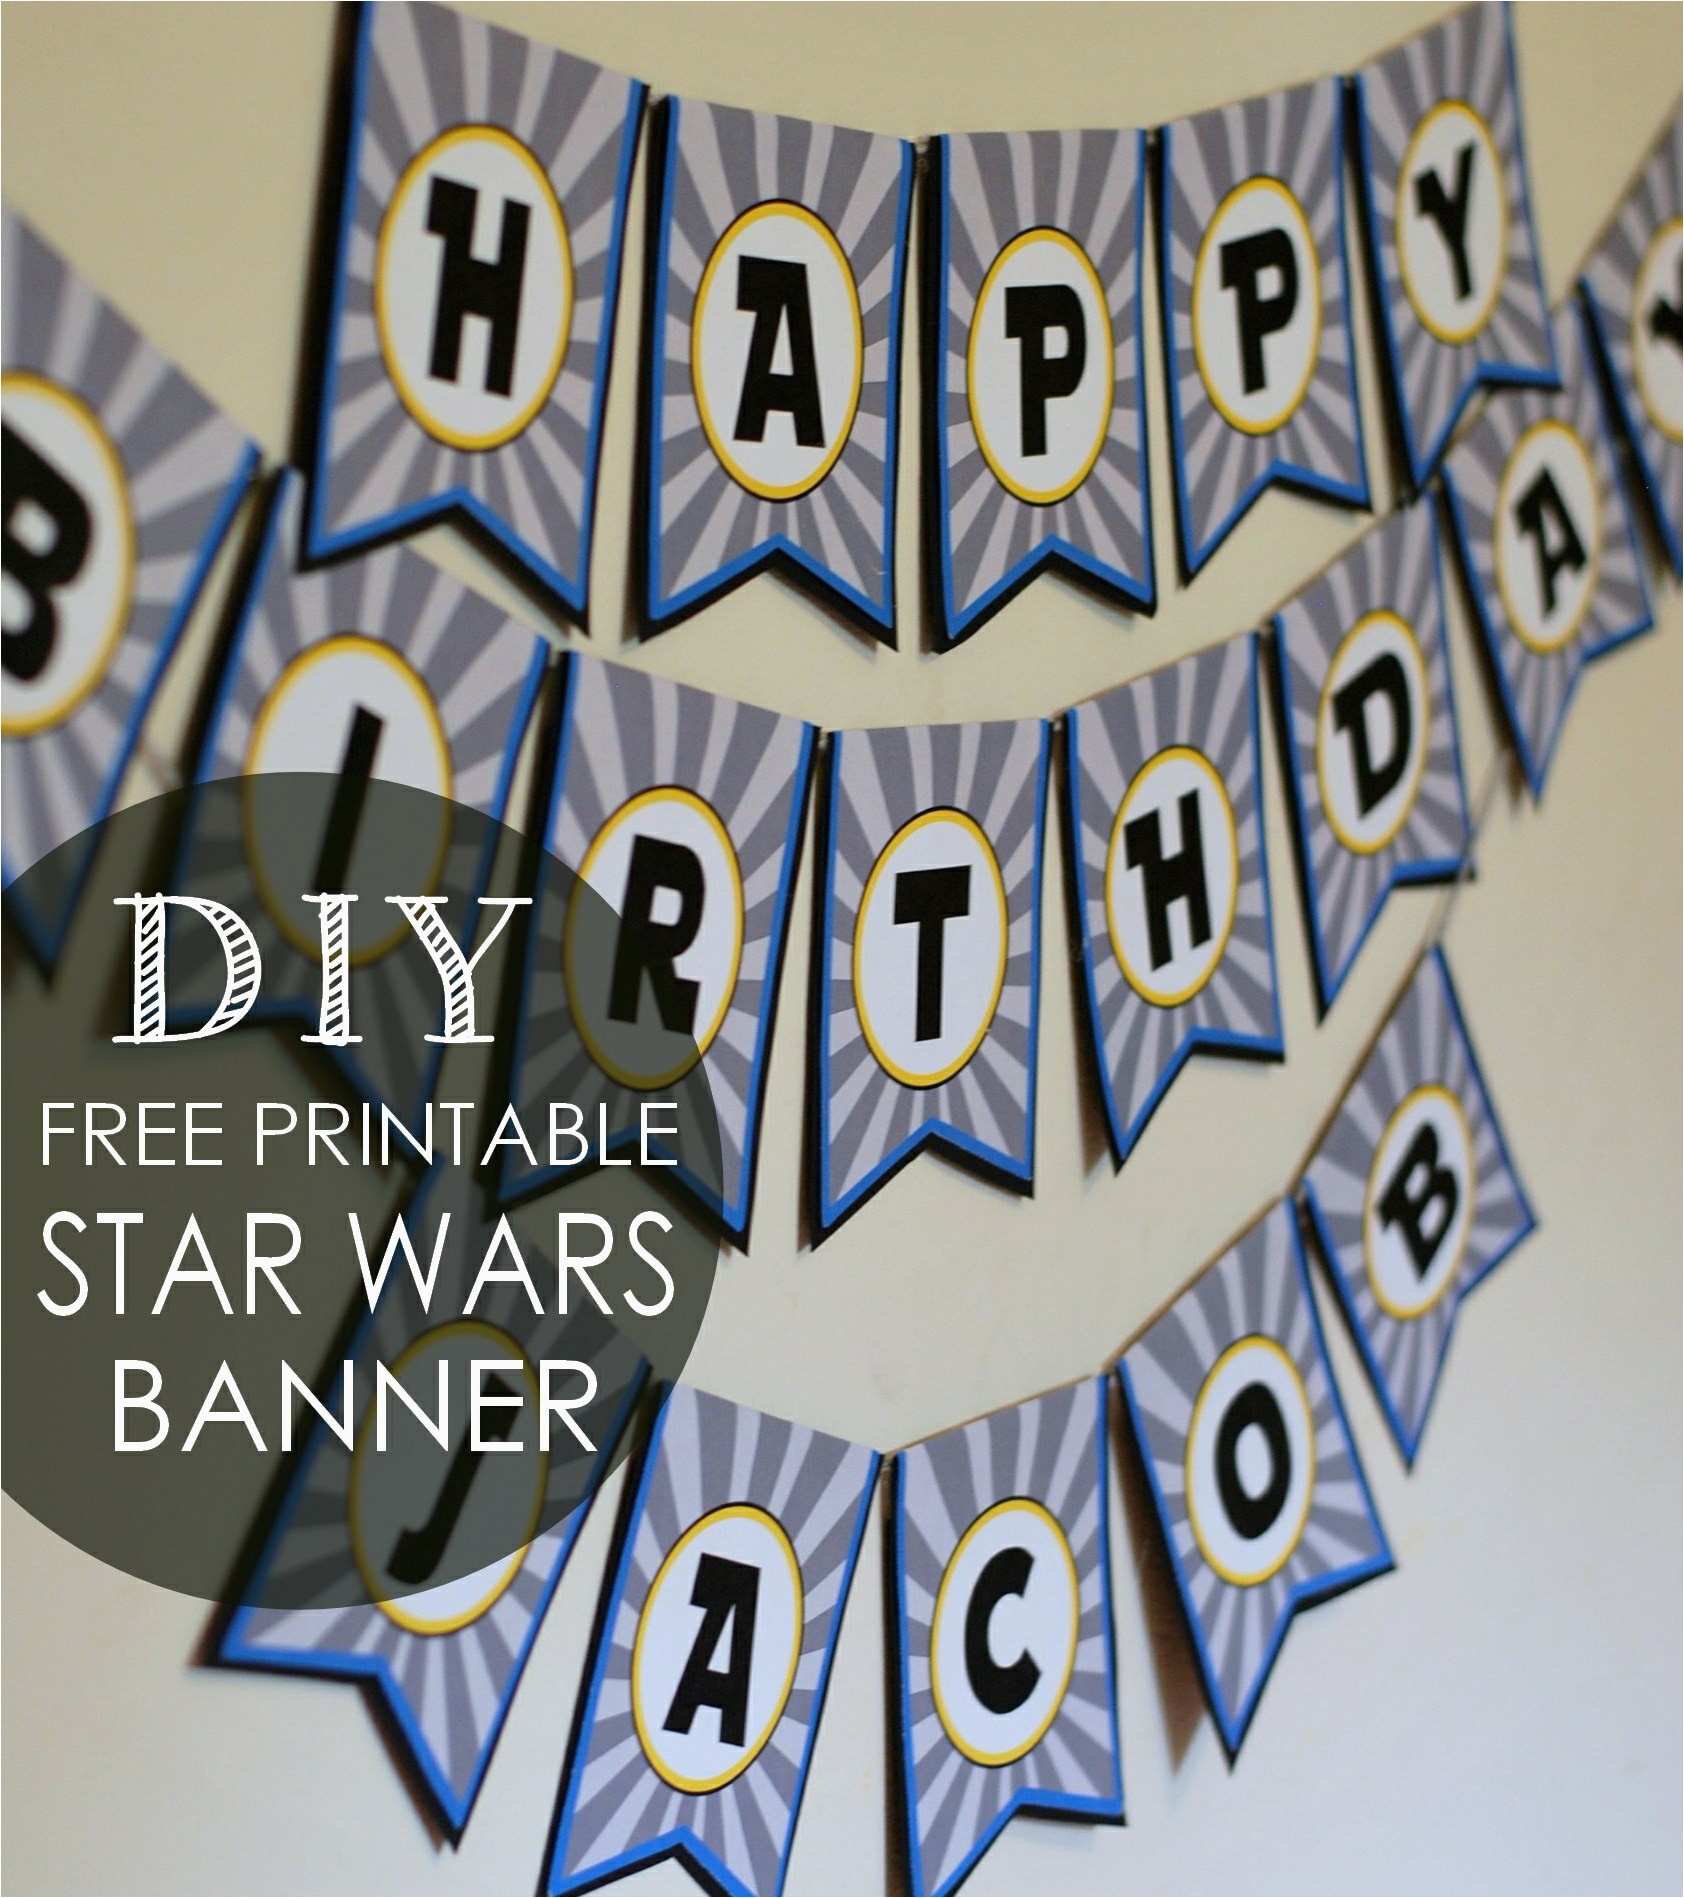 Happy Birthday Banner Printable Free Download Diy Star Wars Birthday Banner Free Printables Posh Tart